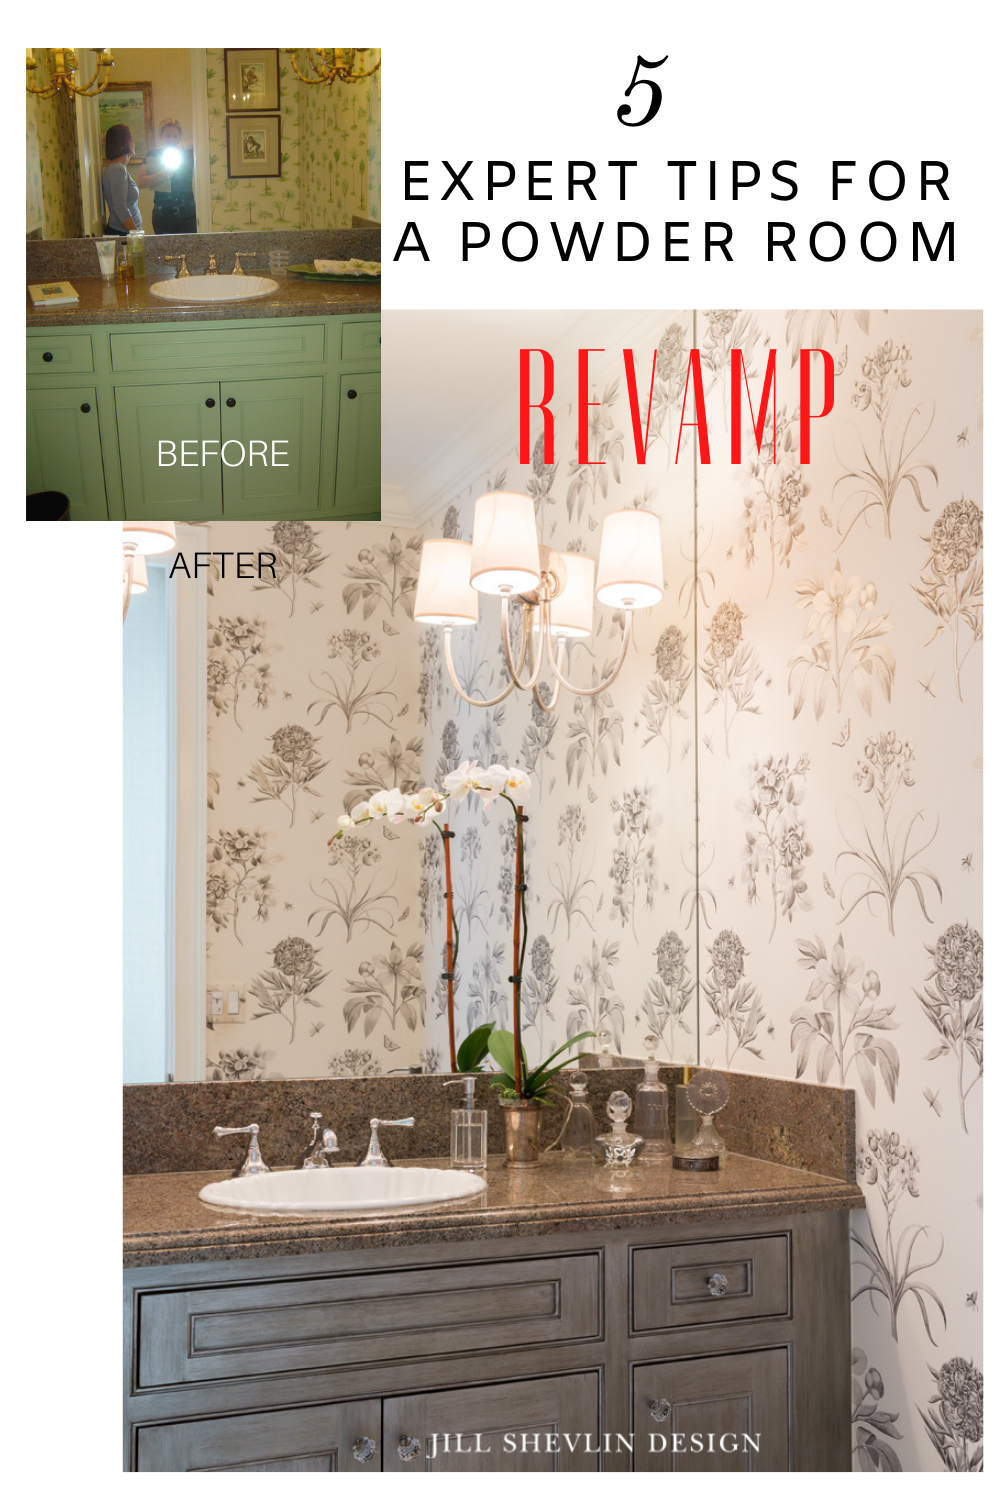 Jill Shevlin Design 5 Expert Tips for a Powder Room Revamp